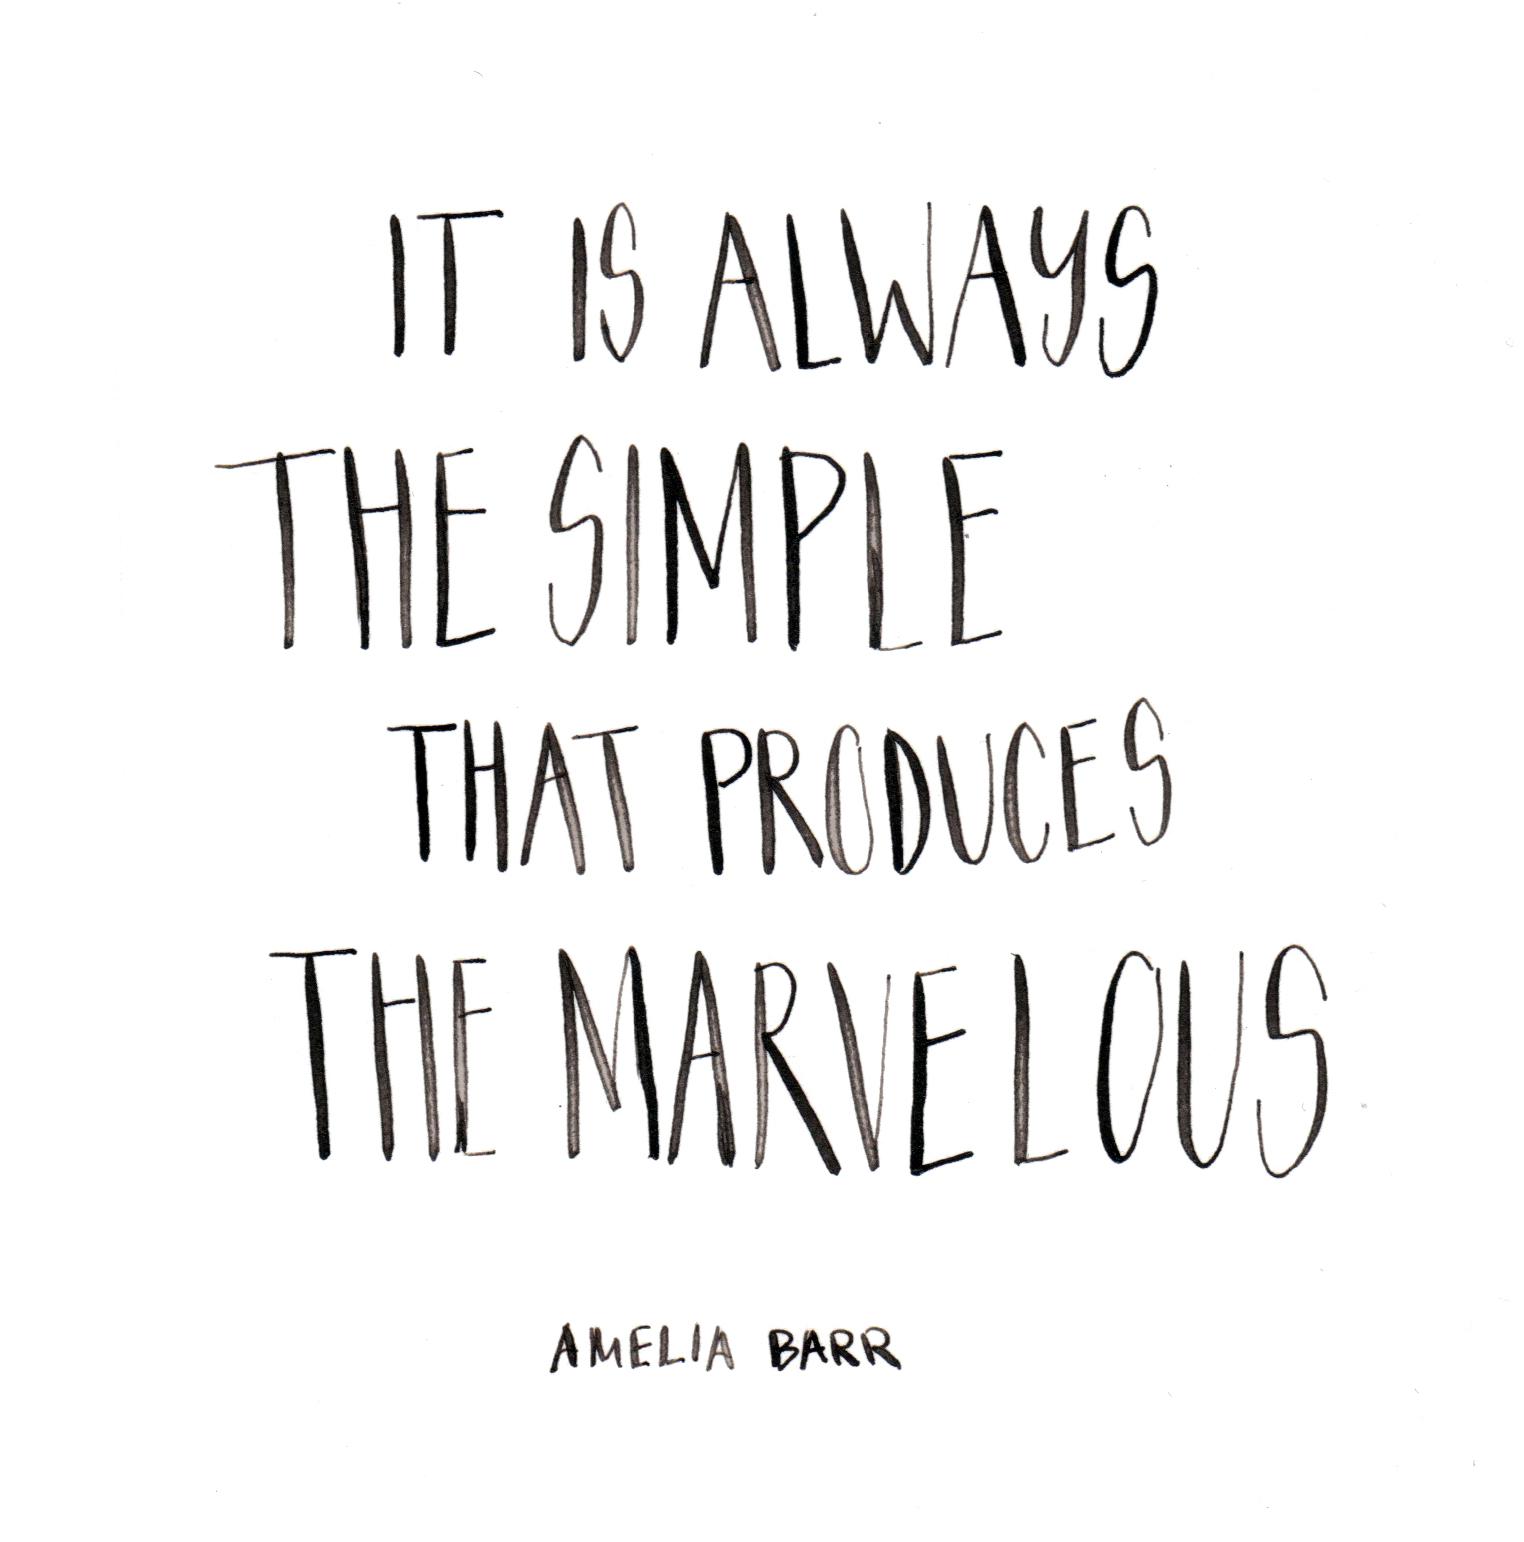 It is always the simple that produces the marvellous. Amelia Barr. Custom Type by Alicia Carvalho | www.alicia-carvalho.com